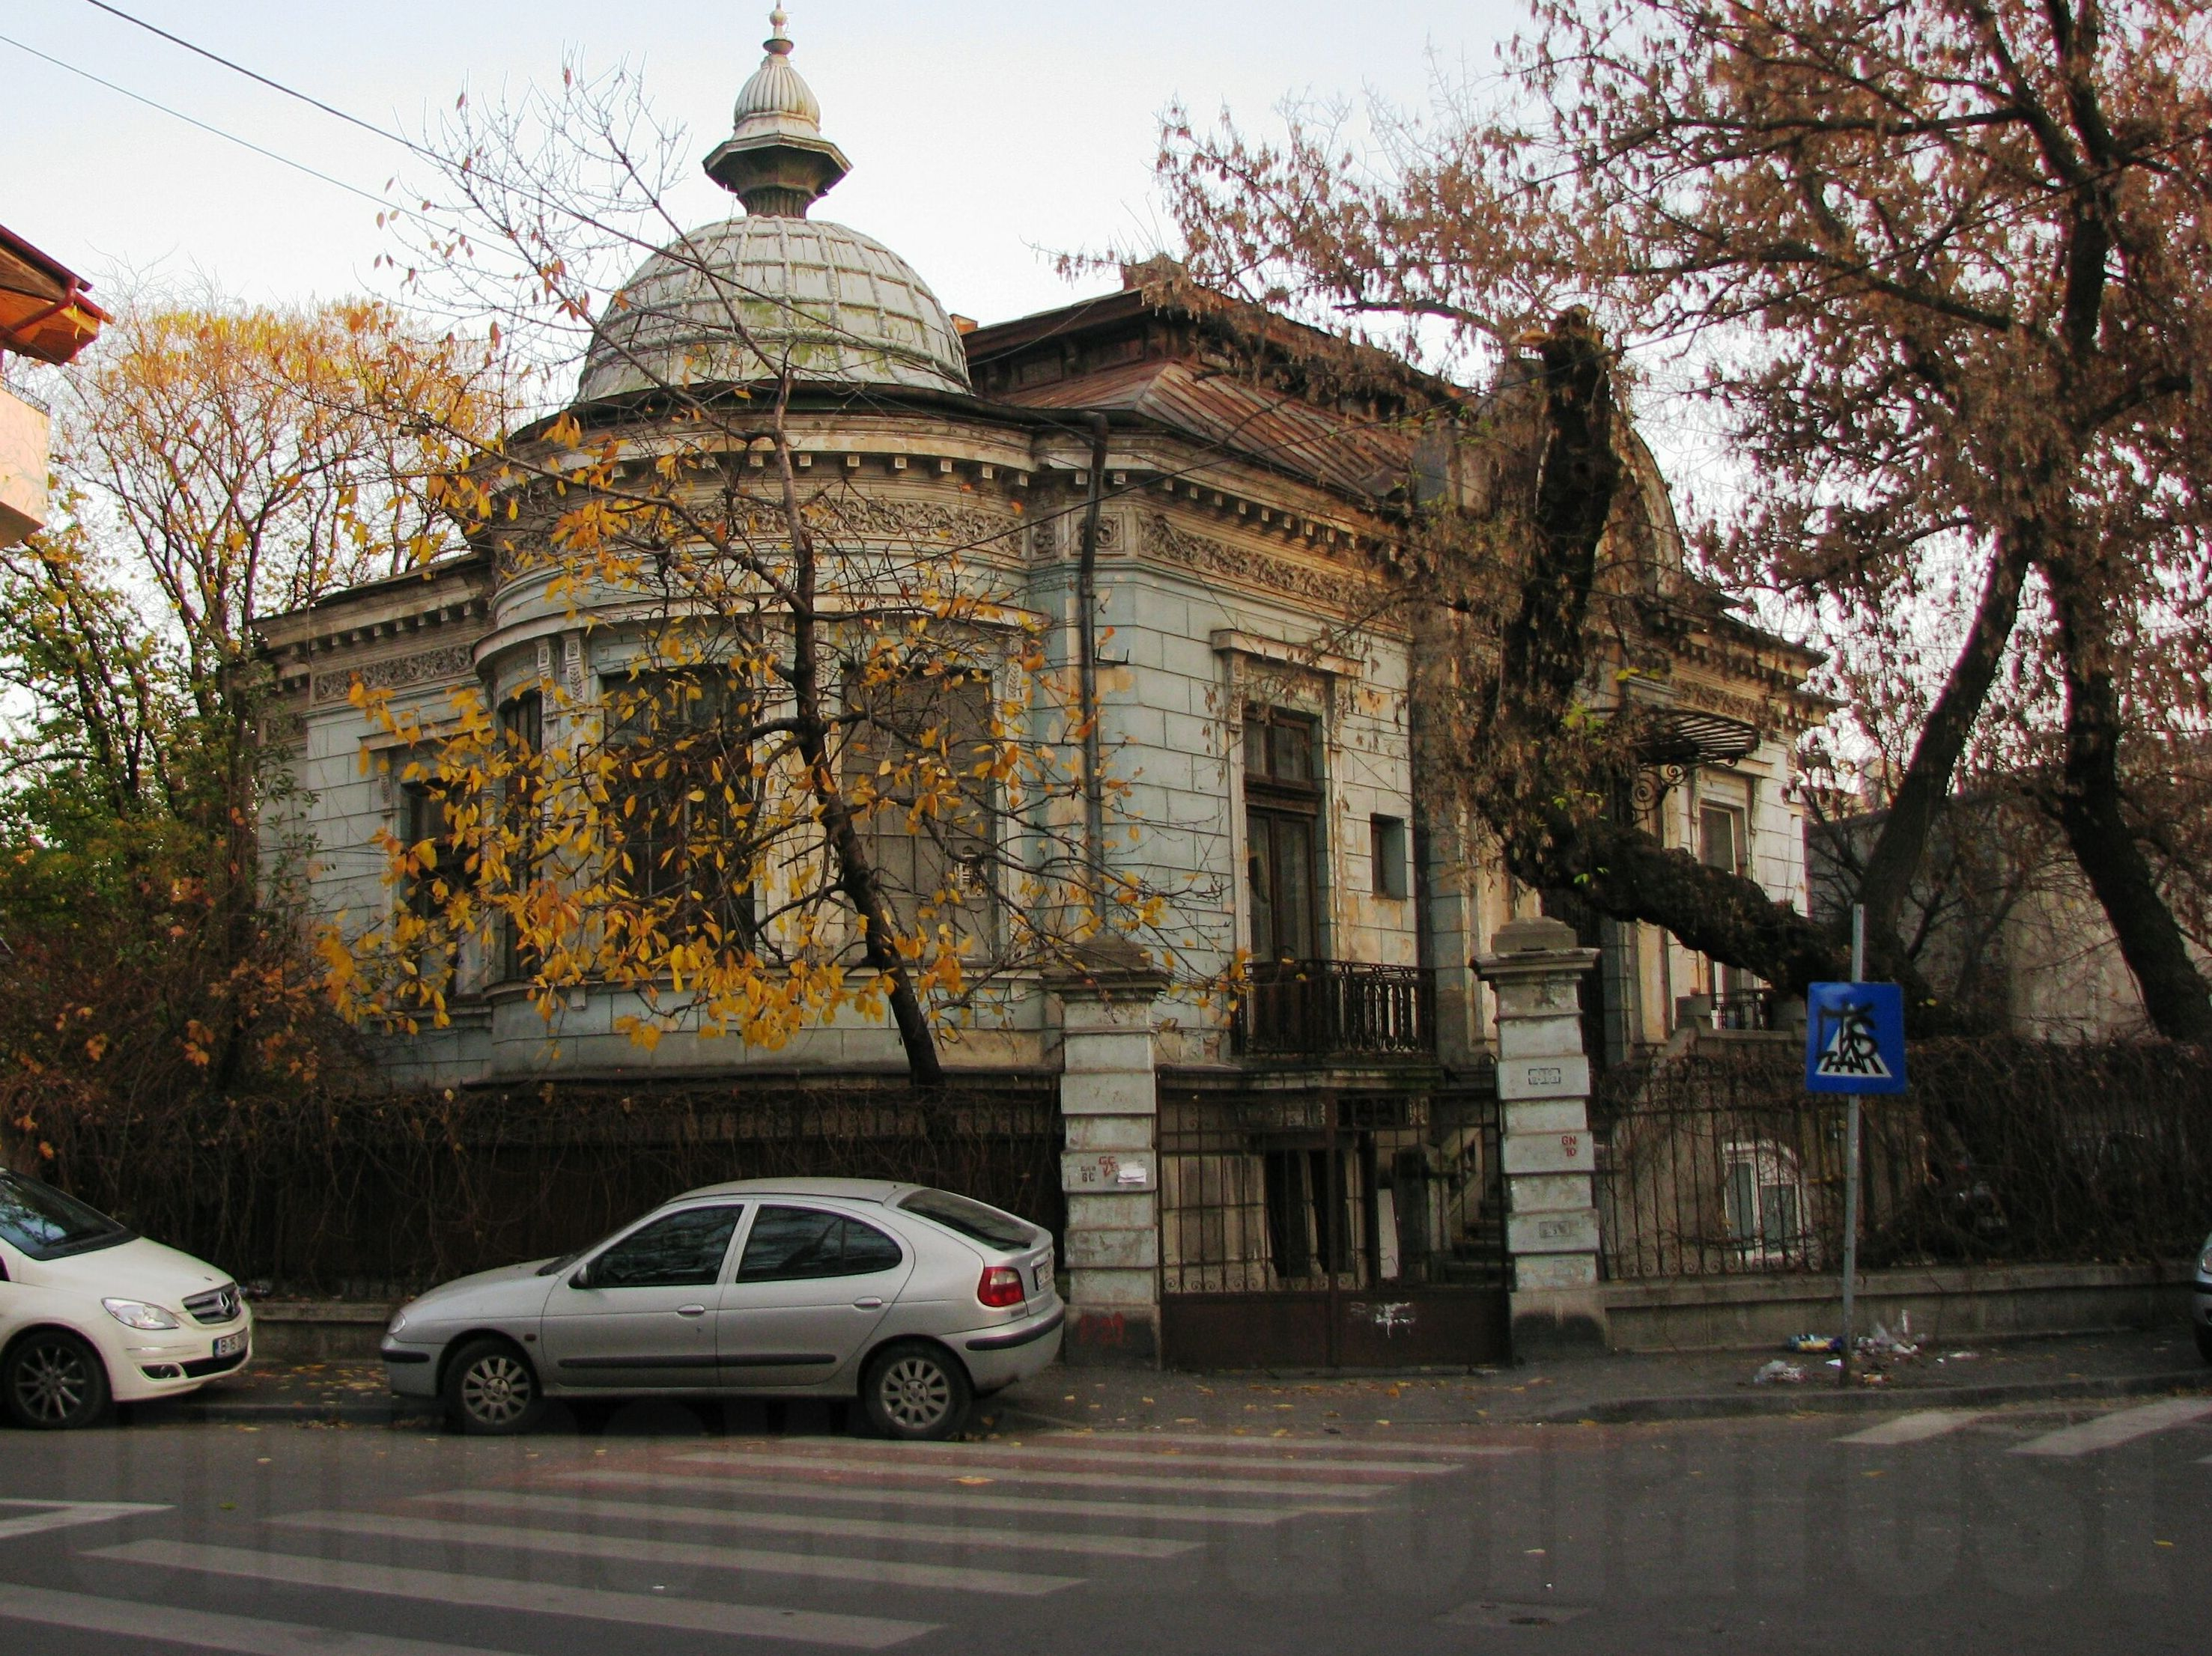 Change 2010 Style >> Bucharest's Old Neighbourhoods: Armenian, Negustori, Mantuleasa (14) | Bucharest Uncovered